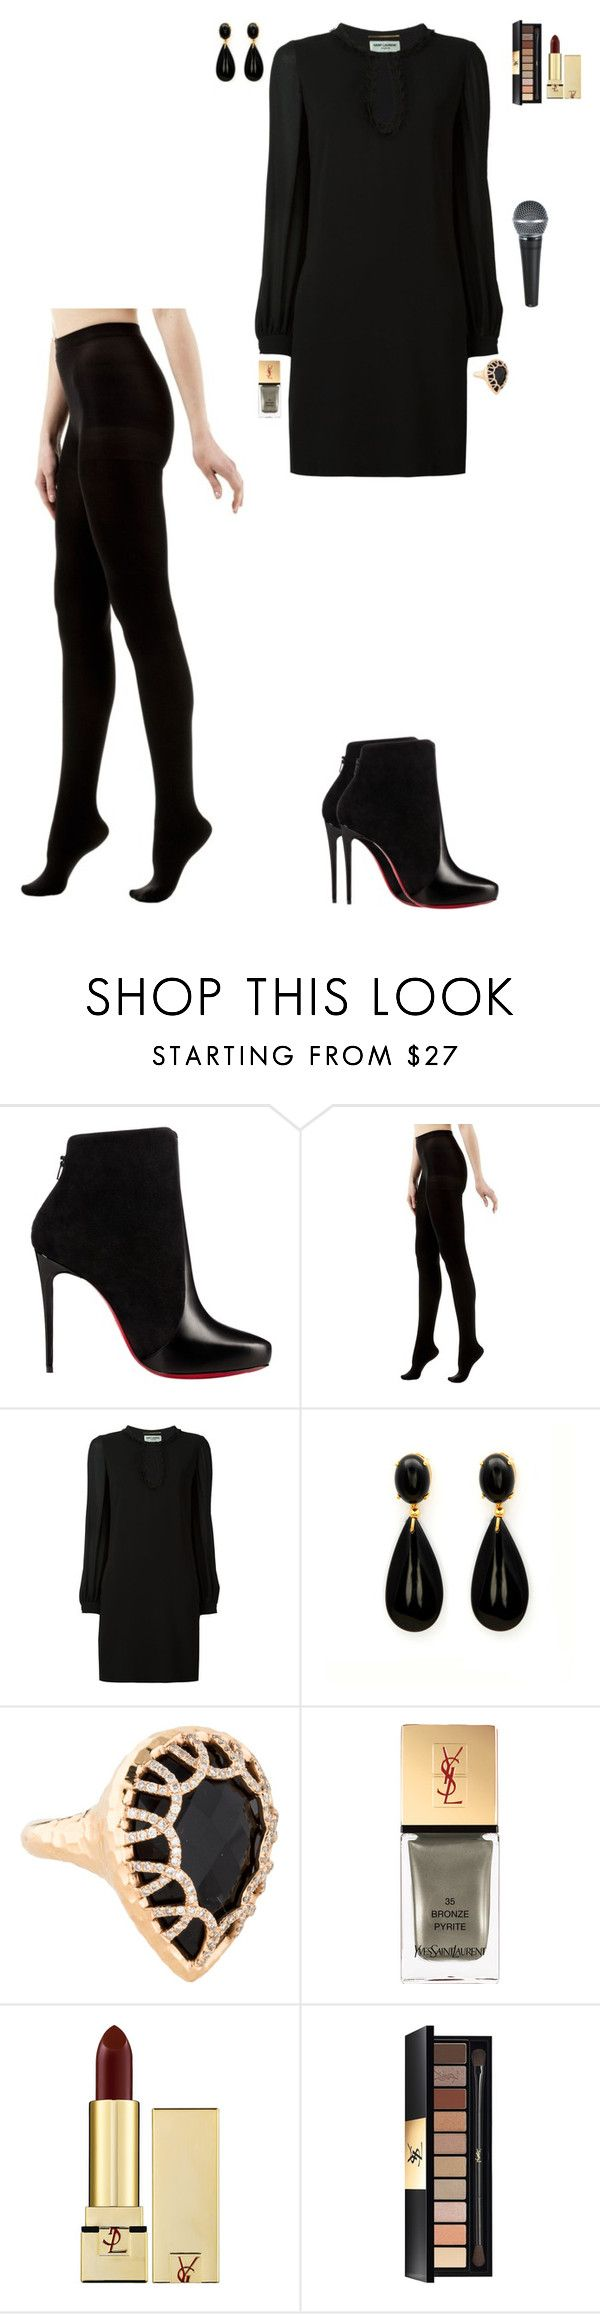 """18(UFC EVENT IN LAS VEGAS)"" by stylev ❤ liked on Polyvore featuring Christian Louboutin, Vim & Vigr and Yves Saint Laurent"